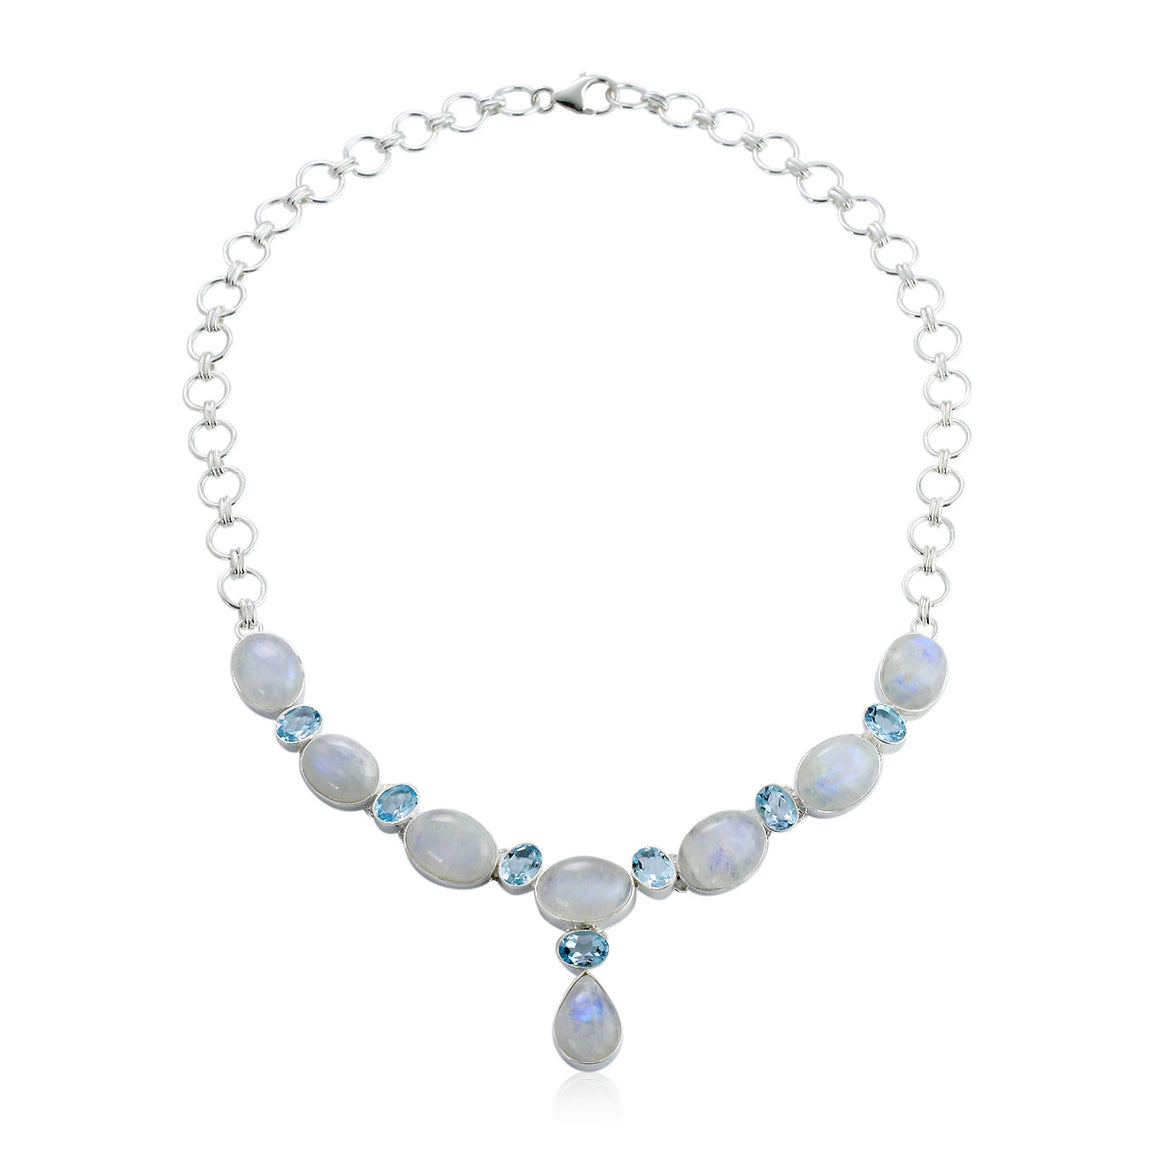 Rainbow Moonstone and Blue Topaz Multi Gemstone Necklace - One of a Kind